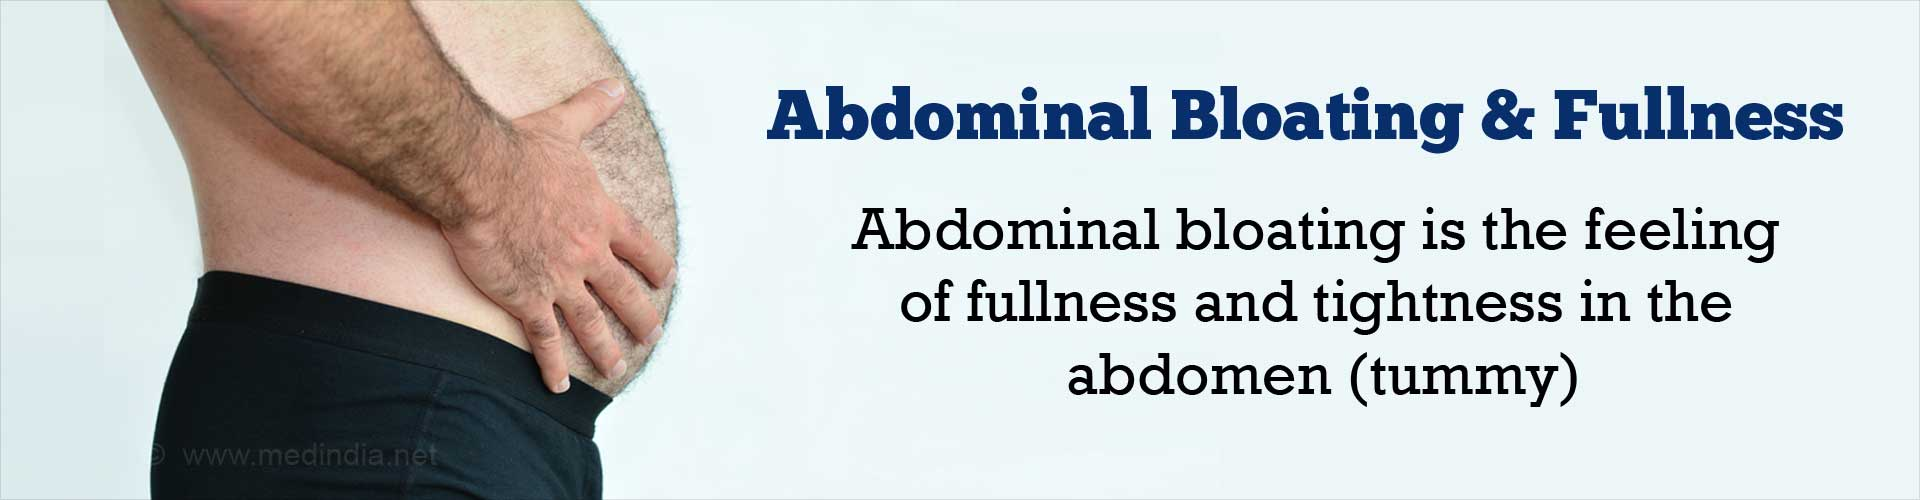 Abdomen Swelling and Fullness - Symptom Evaluation